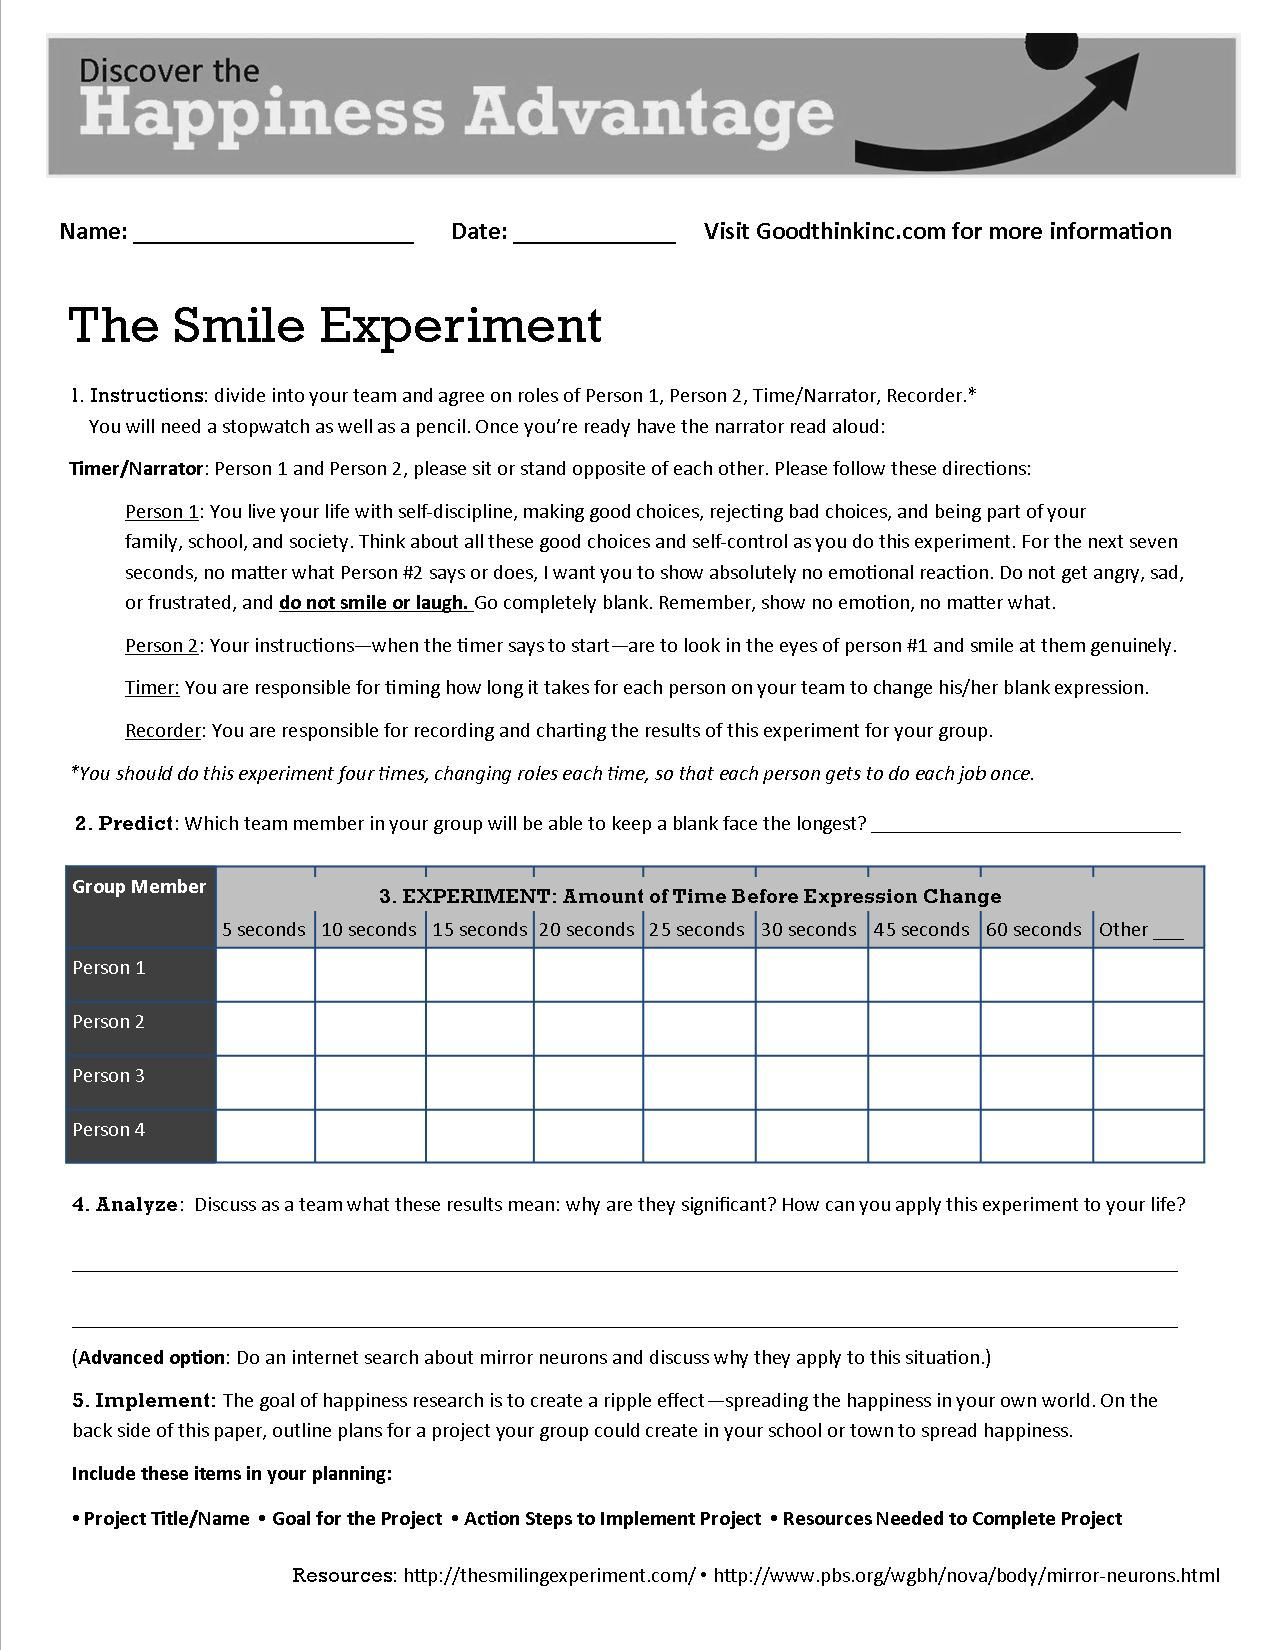 Worksheets High School Psychology Worksheets this is goodthinks smile experiment worksheet that turns our test into a classroom or educational psychologyfree